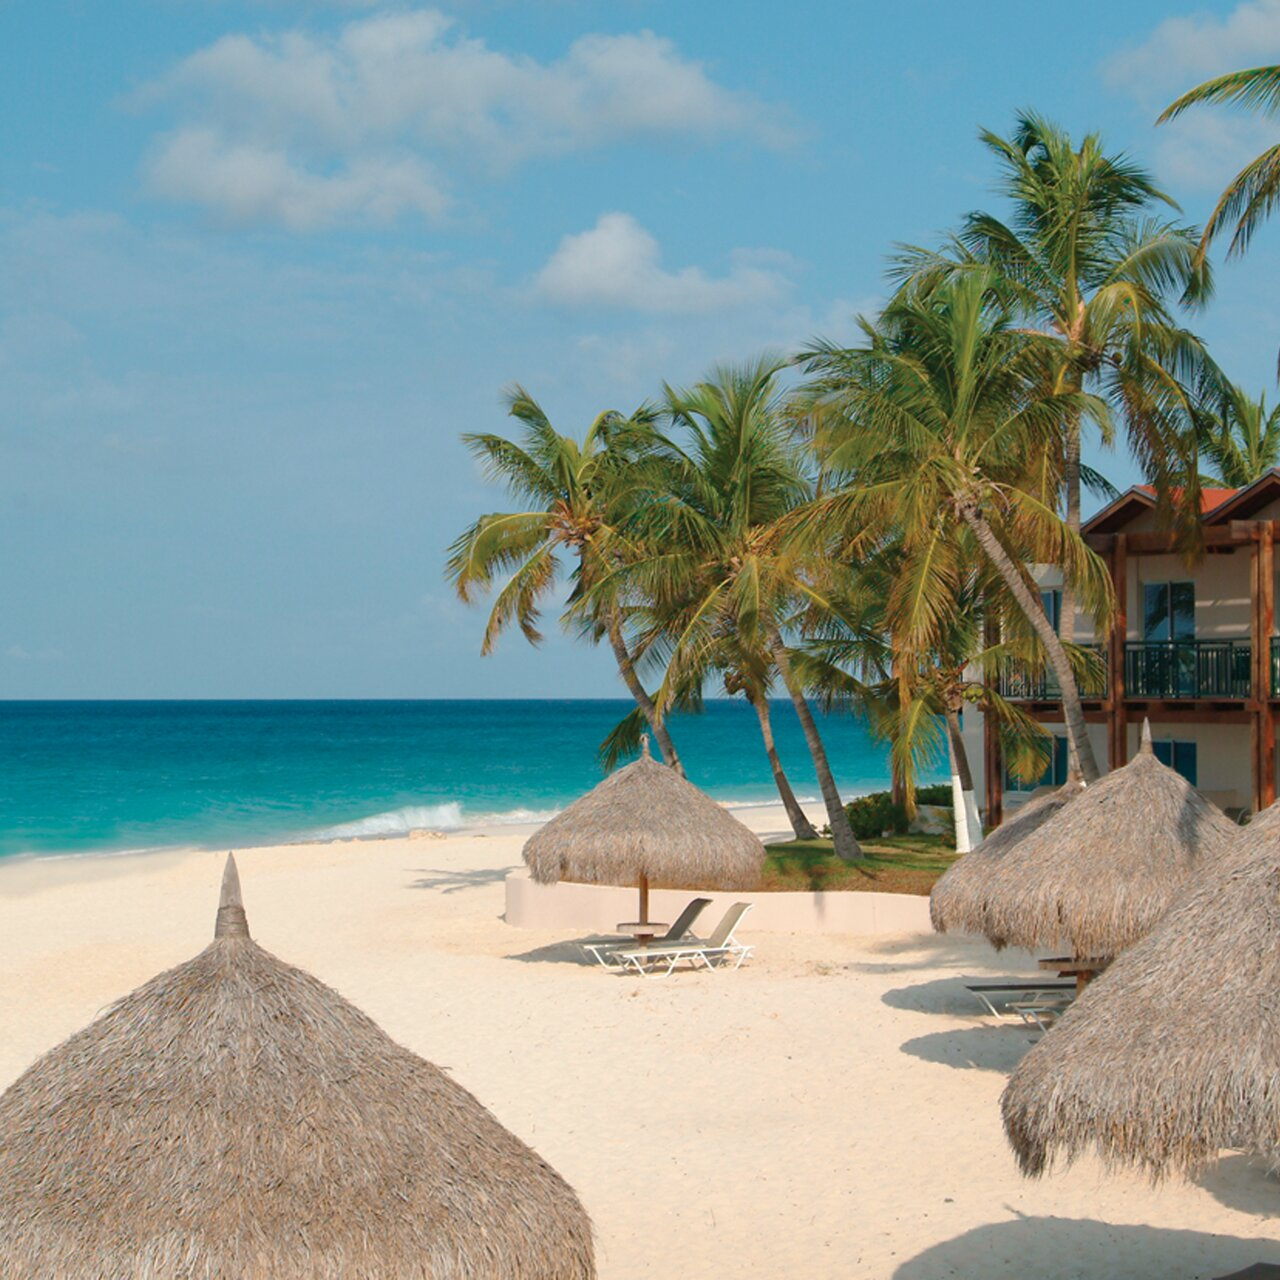 Aruba All Inclusive Resorts >> Aruba All Inclusive Beachfront Resorts Divi Resort On Druif Beach